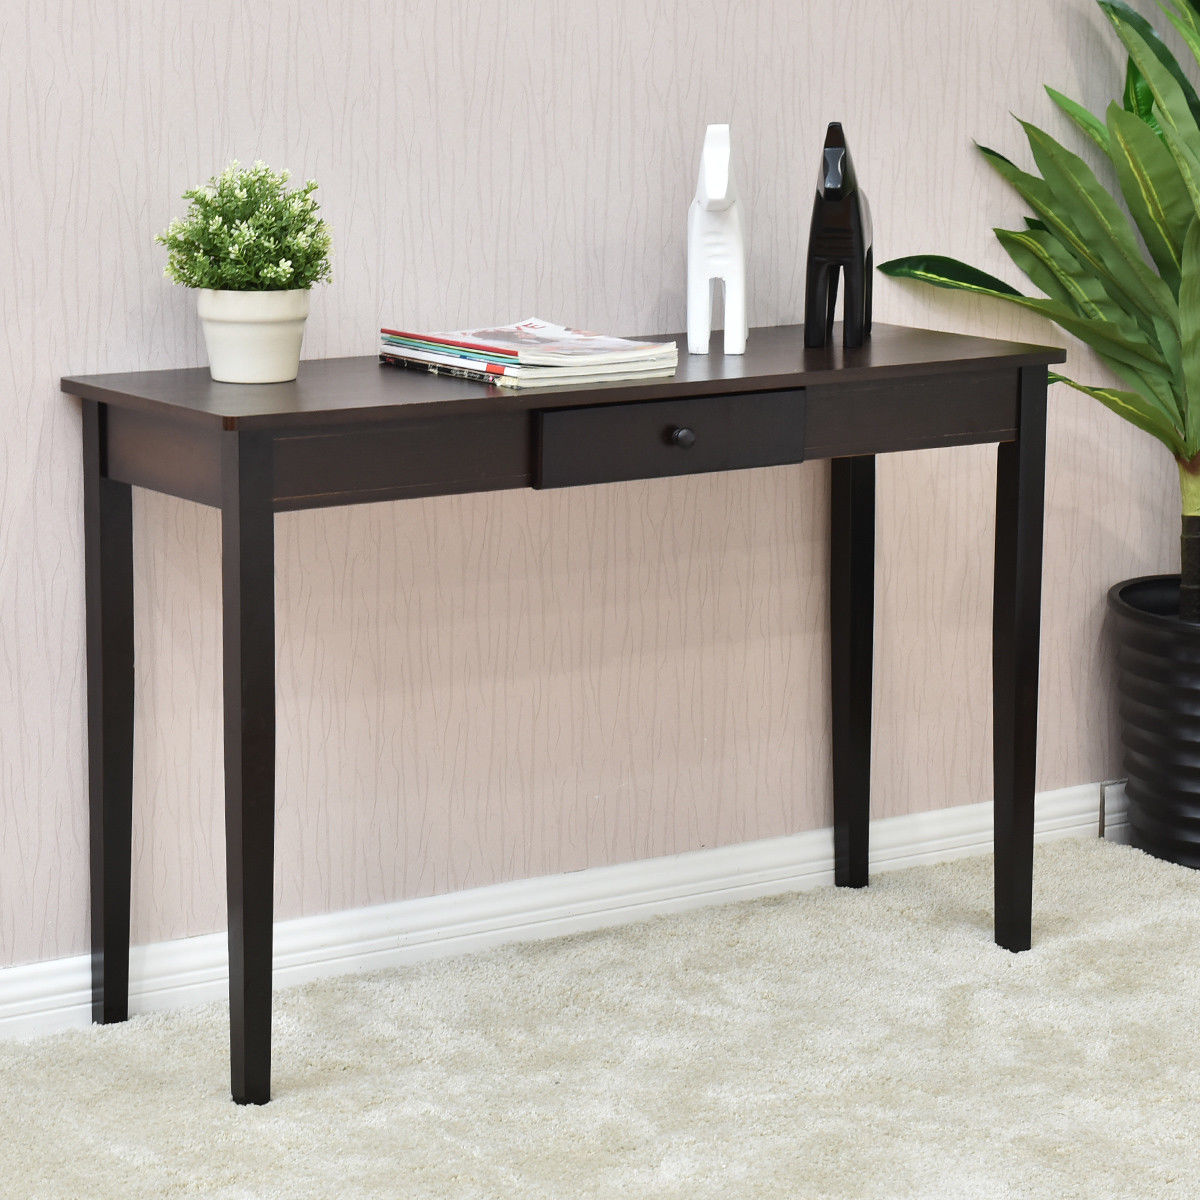 Giantex Console Table Entry Hallway Desk Entryway Side Sofa Accent Table With Drawer Modern Wood Living Room Furniture Hw56071 Buy At The Price Of 59 99 In Aliexpress Com Imall Com